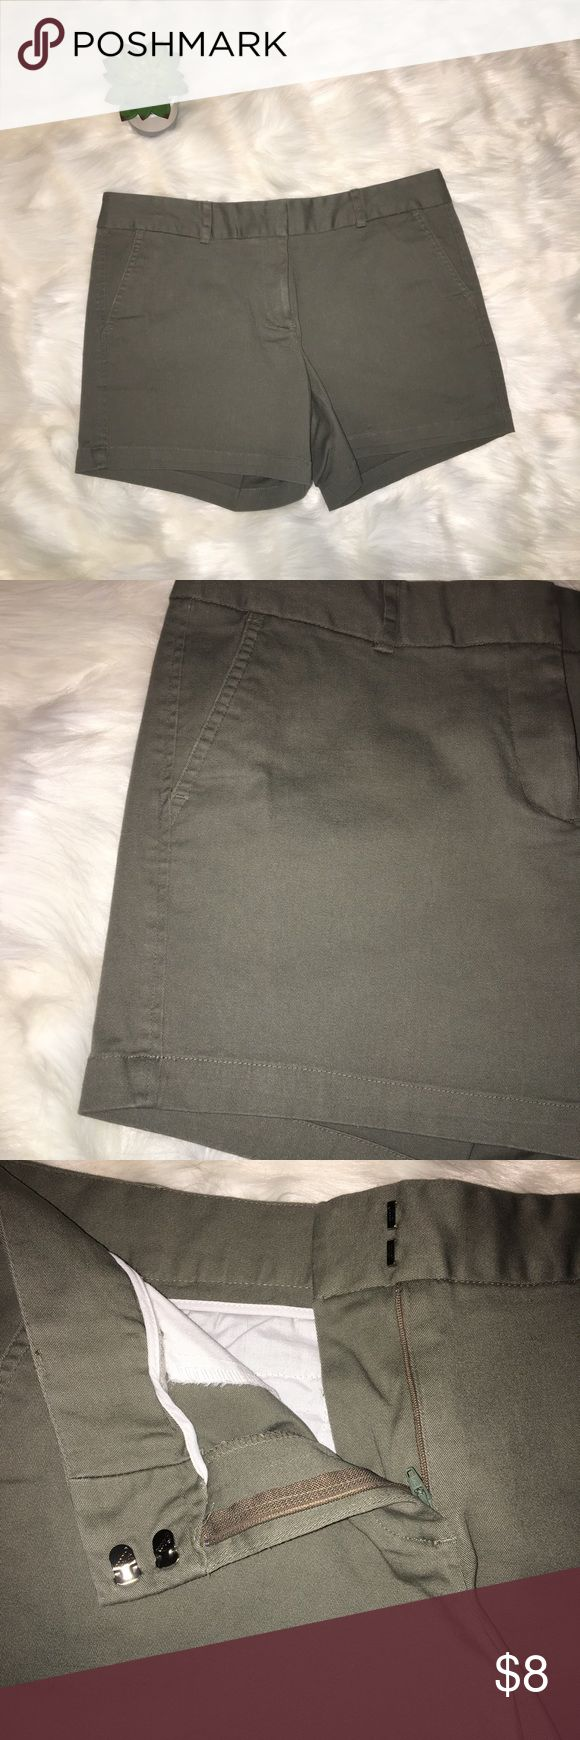 Land'N Sea Women's Green Khaki Shorts Size 10 Great condition! Perfect for wearing around.                            17 in wide; inseam 5 in, length 13 in🍓 Land'n Sea Shorts